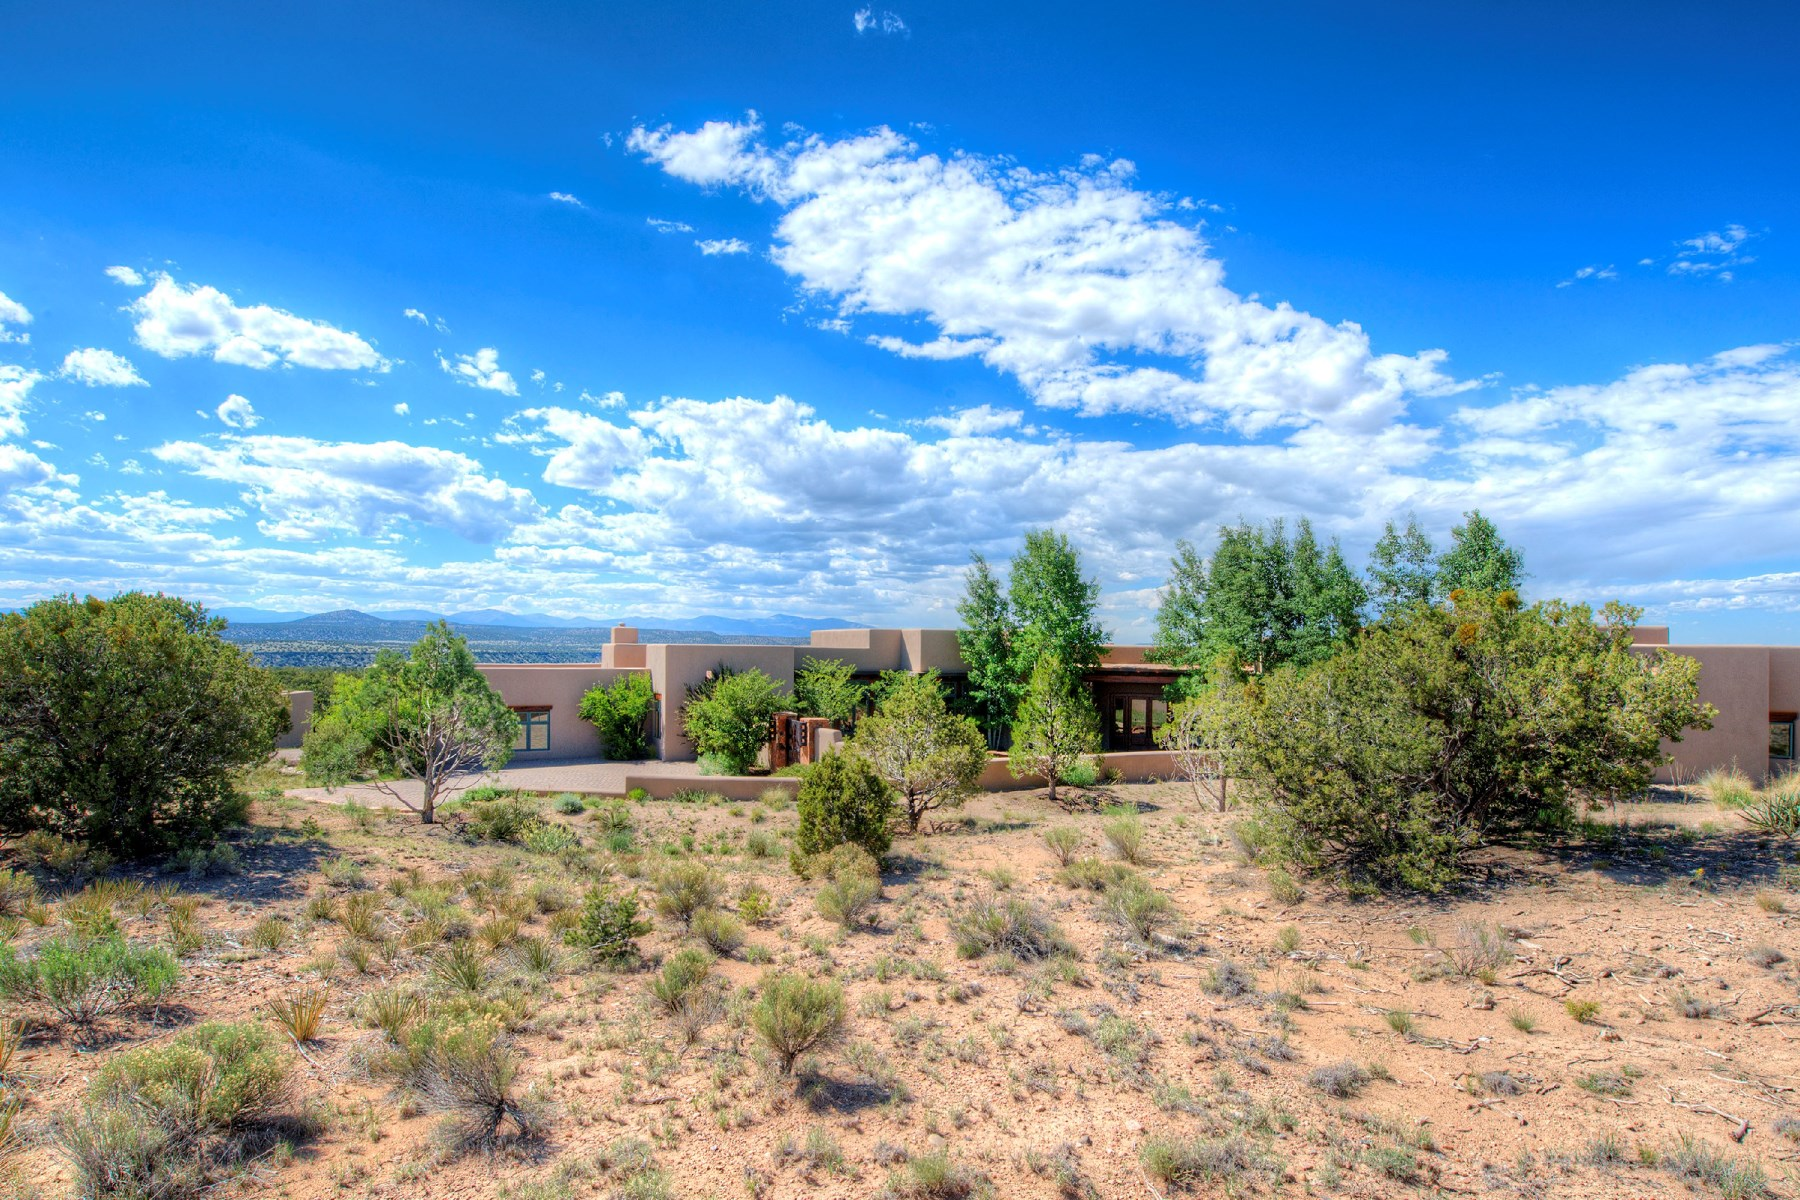 Single Family Home for Sale at 24, 5 & 26 Hacienda Rincon Las Campanas & Los Santeros, Santa Fe, New Mexico 87506 United States